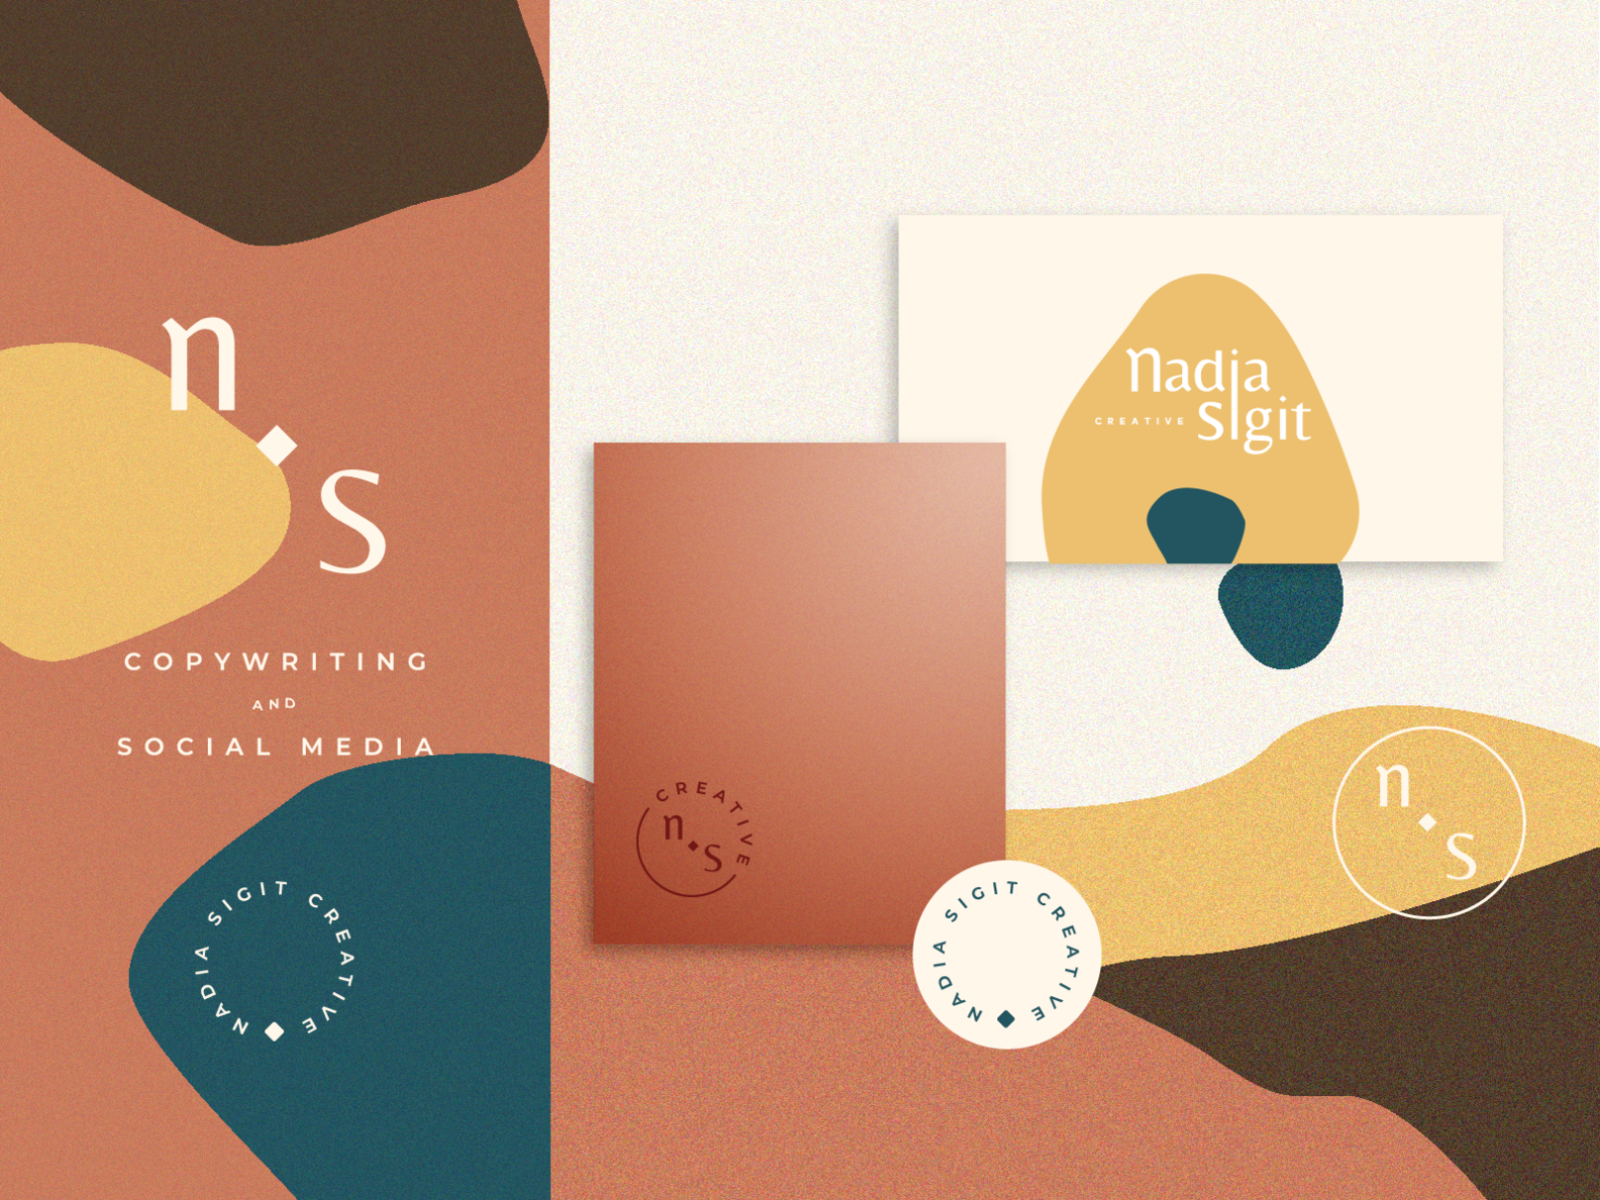 5 Striking Color Trends You'll Want to Hop on in 2020 - Web Design Ledger